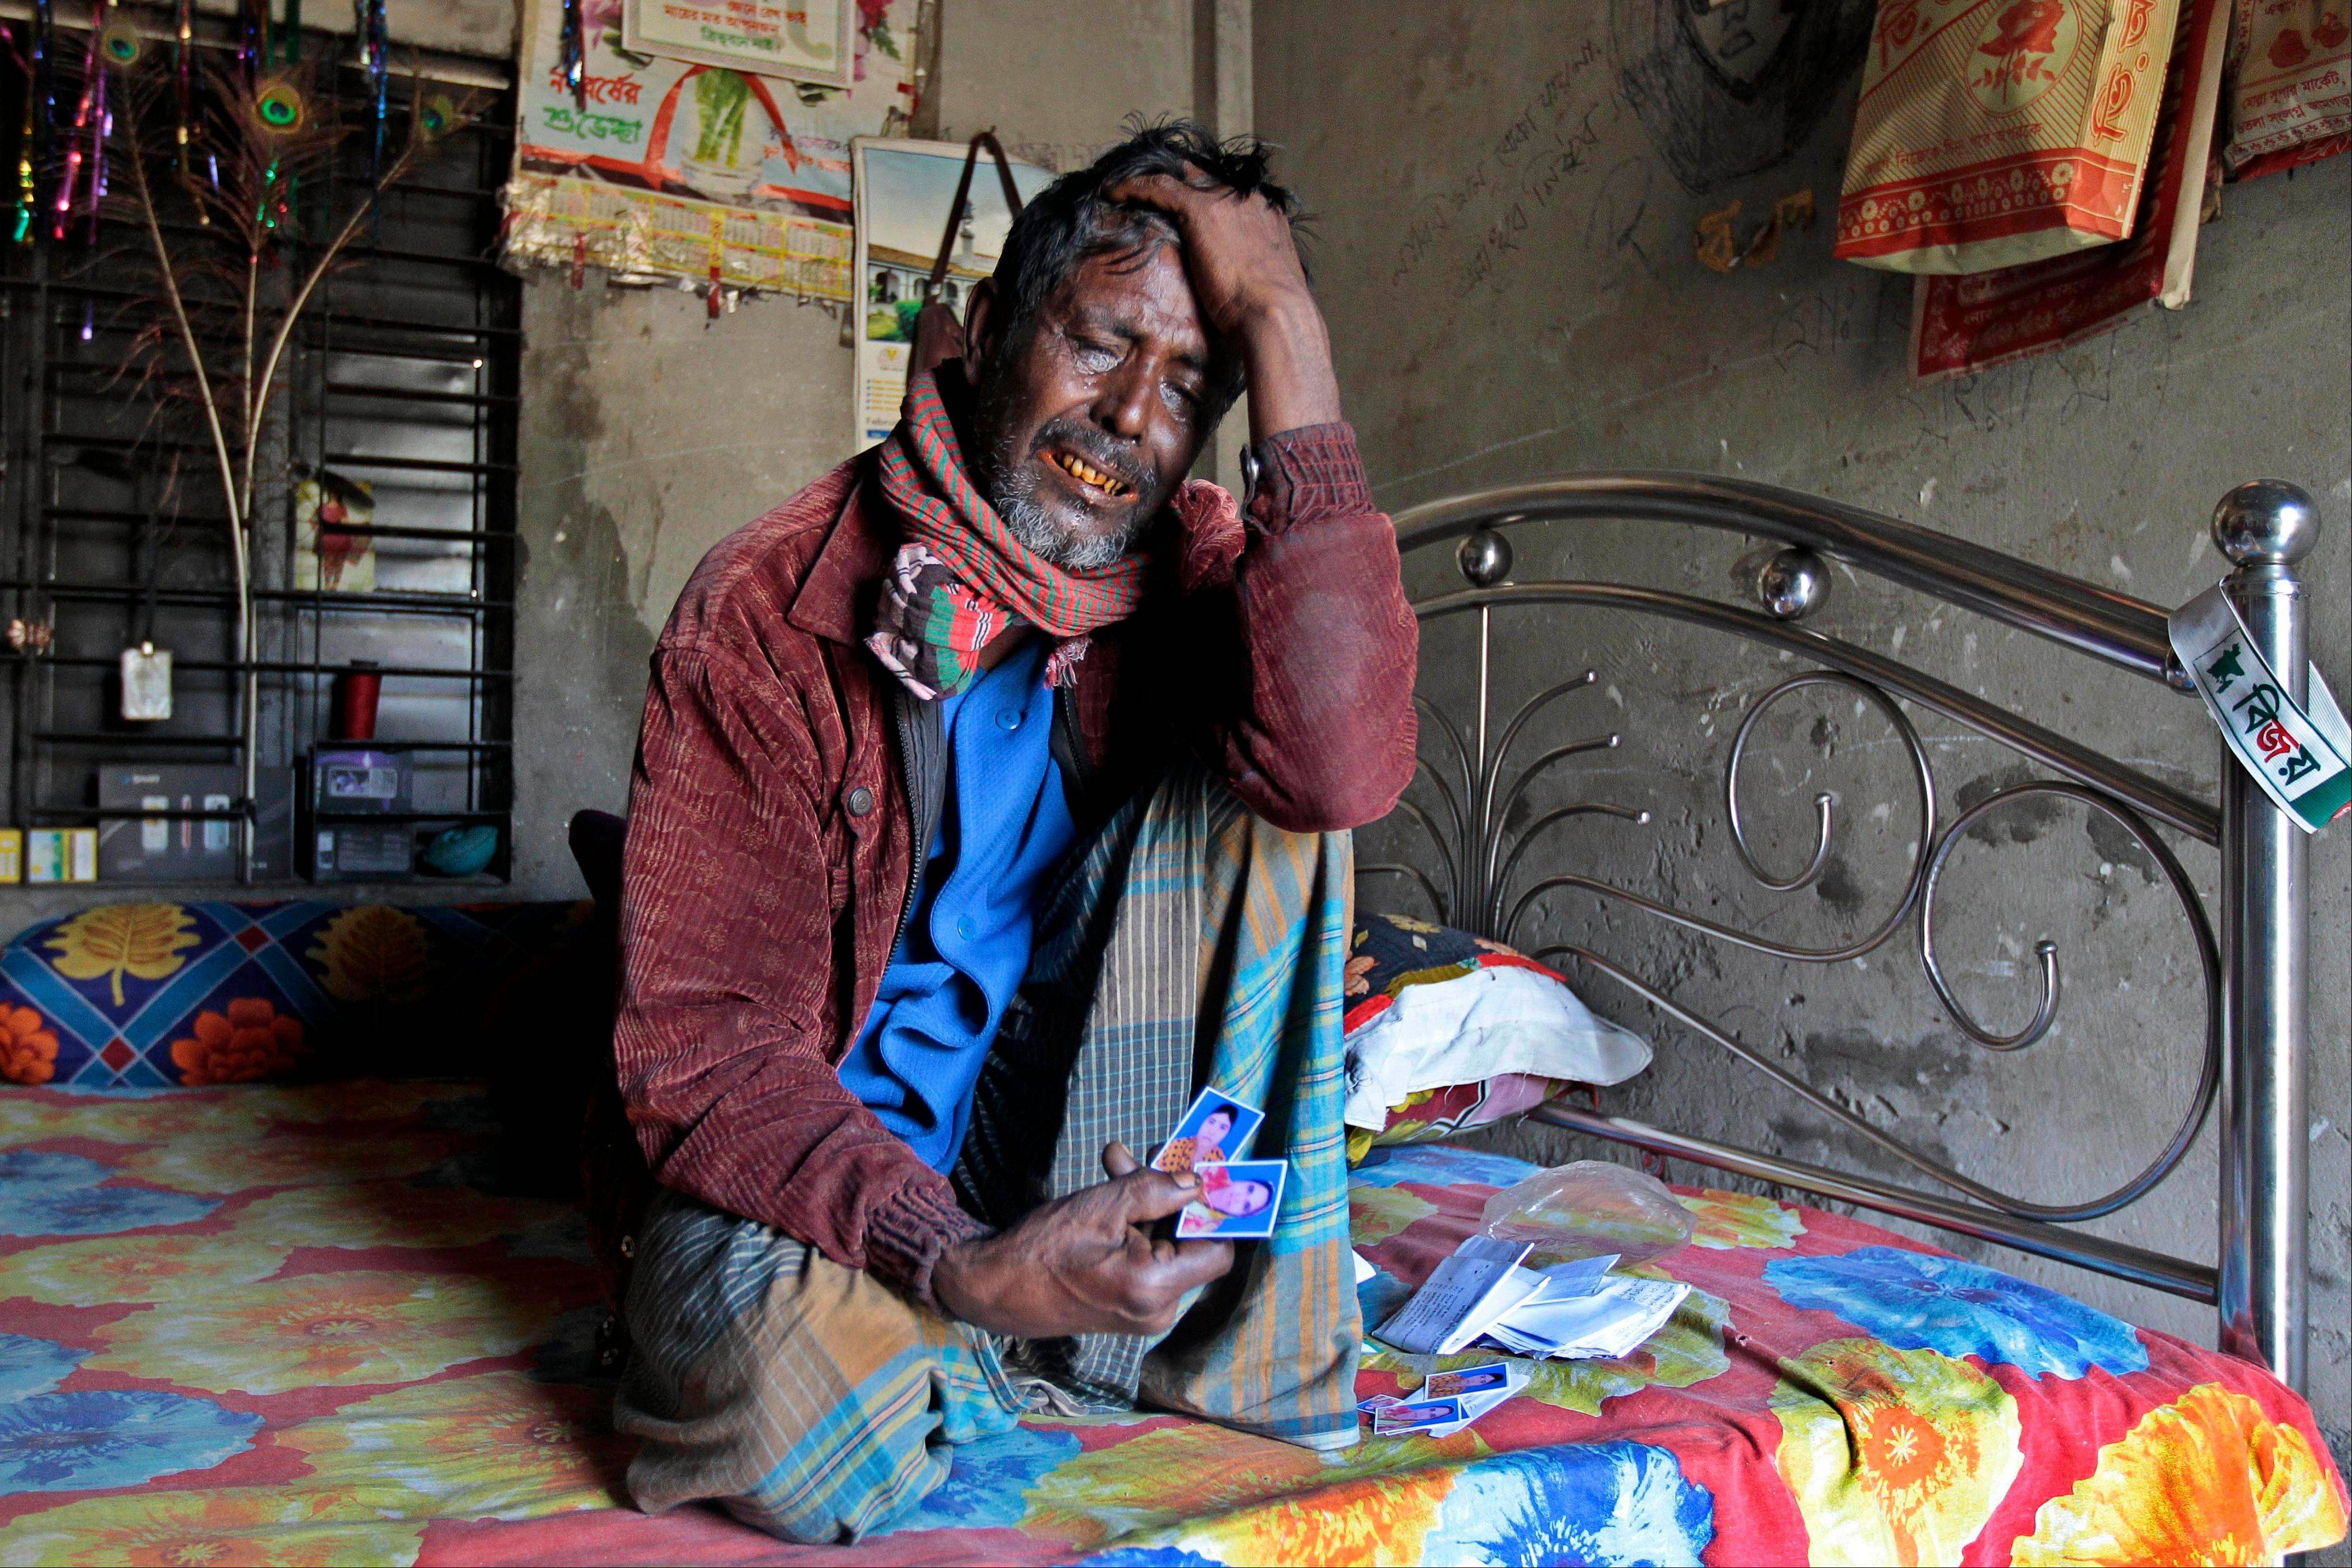 Two months after his wife and daughter were killed in a fire at the Bangladeshi garment factory, 55-year-old Ansar is scrambling to survive. Ansar has been unable to pay his rent for two months and fears that if he gets evicted and is forced to return to his home village in the impoverished north, he may never be compensated.